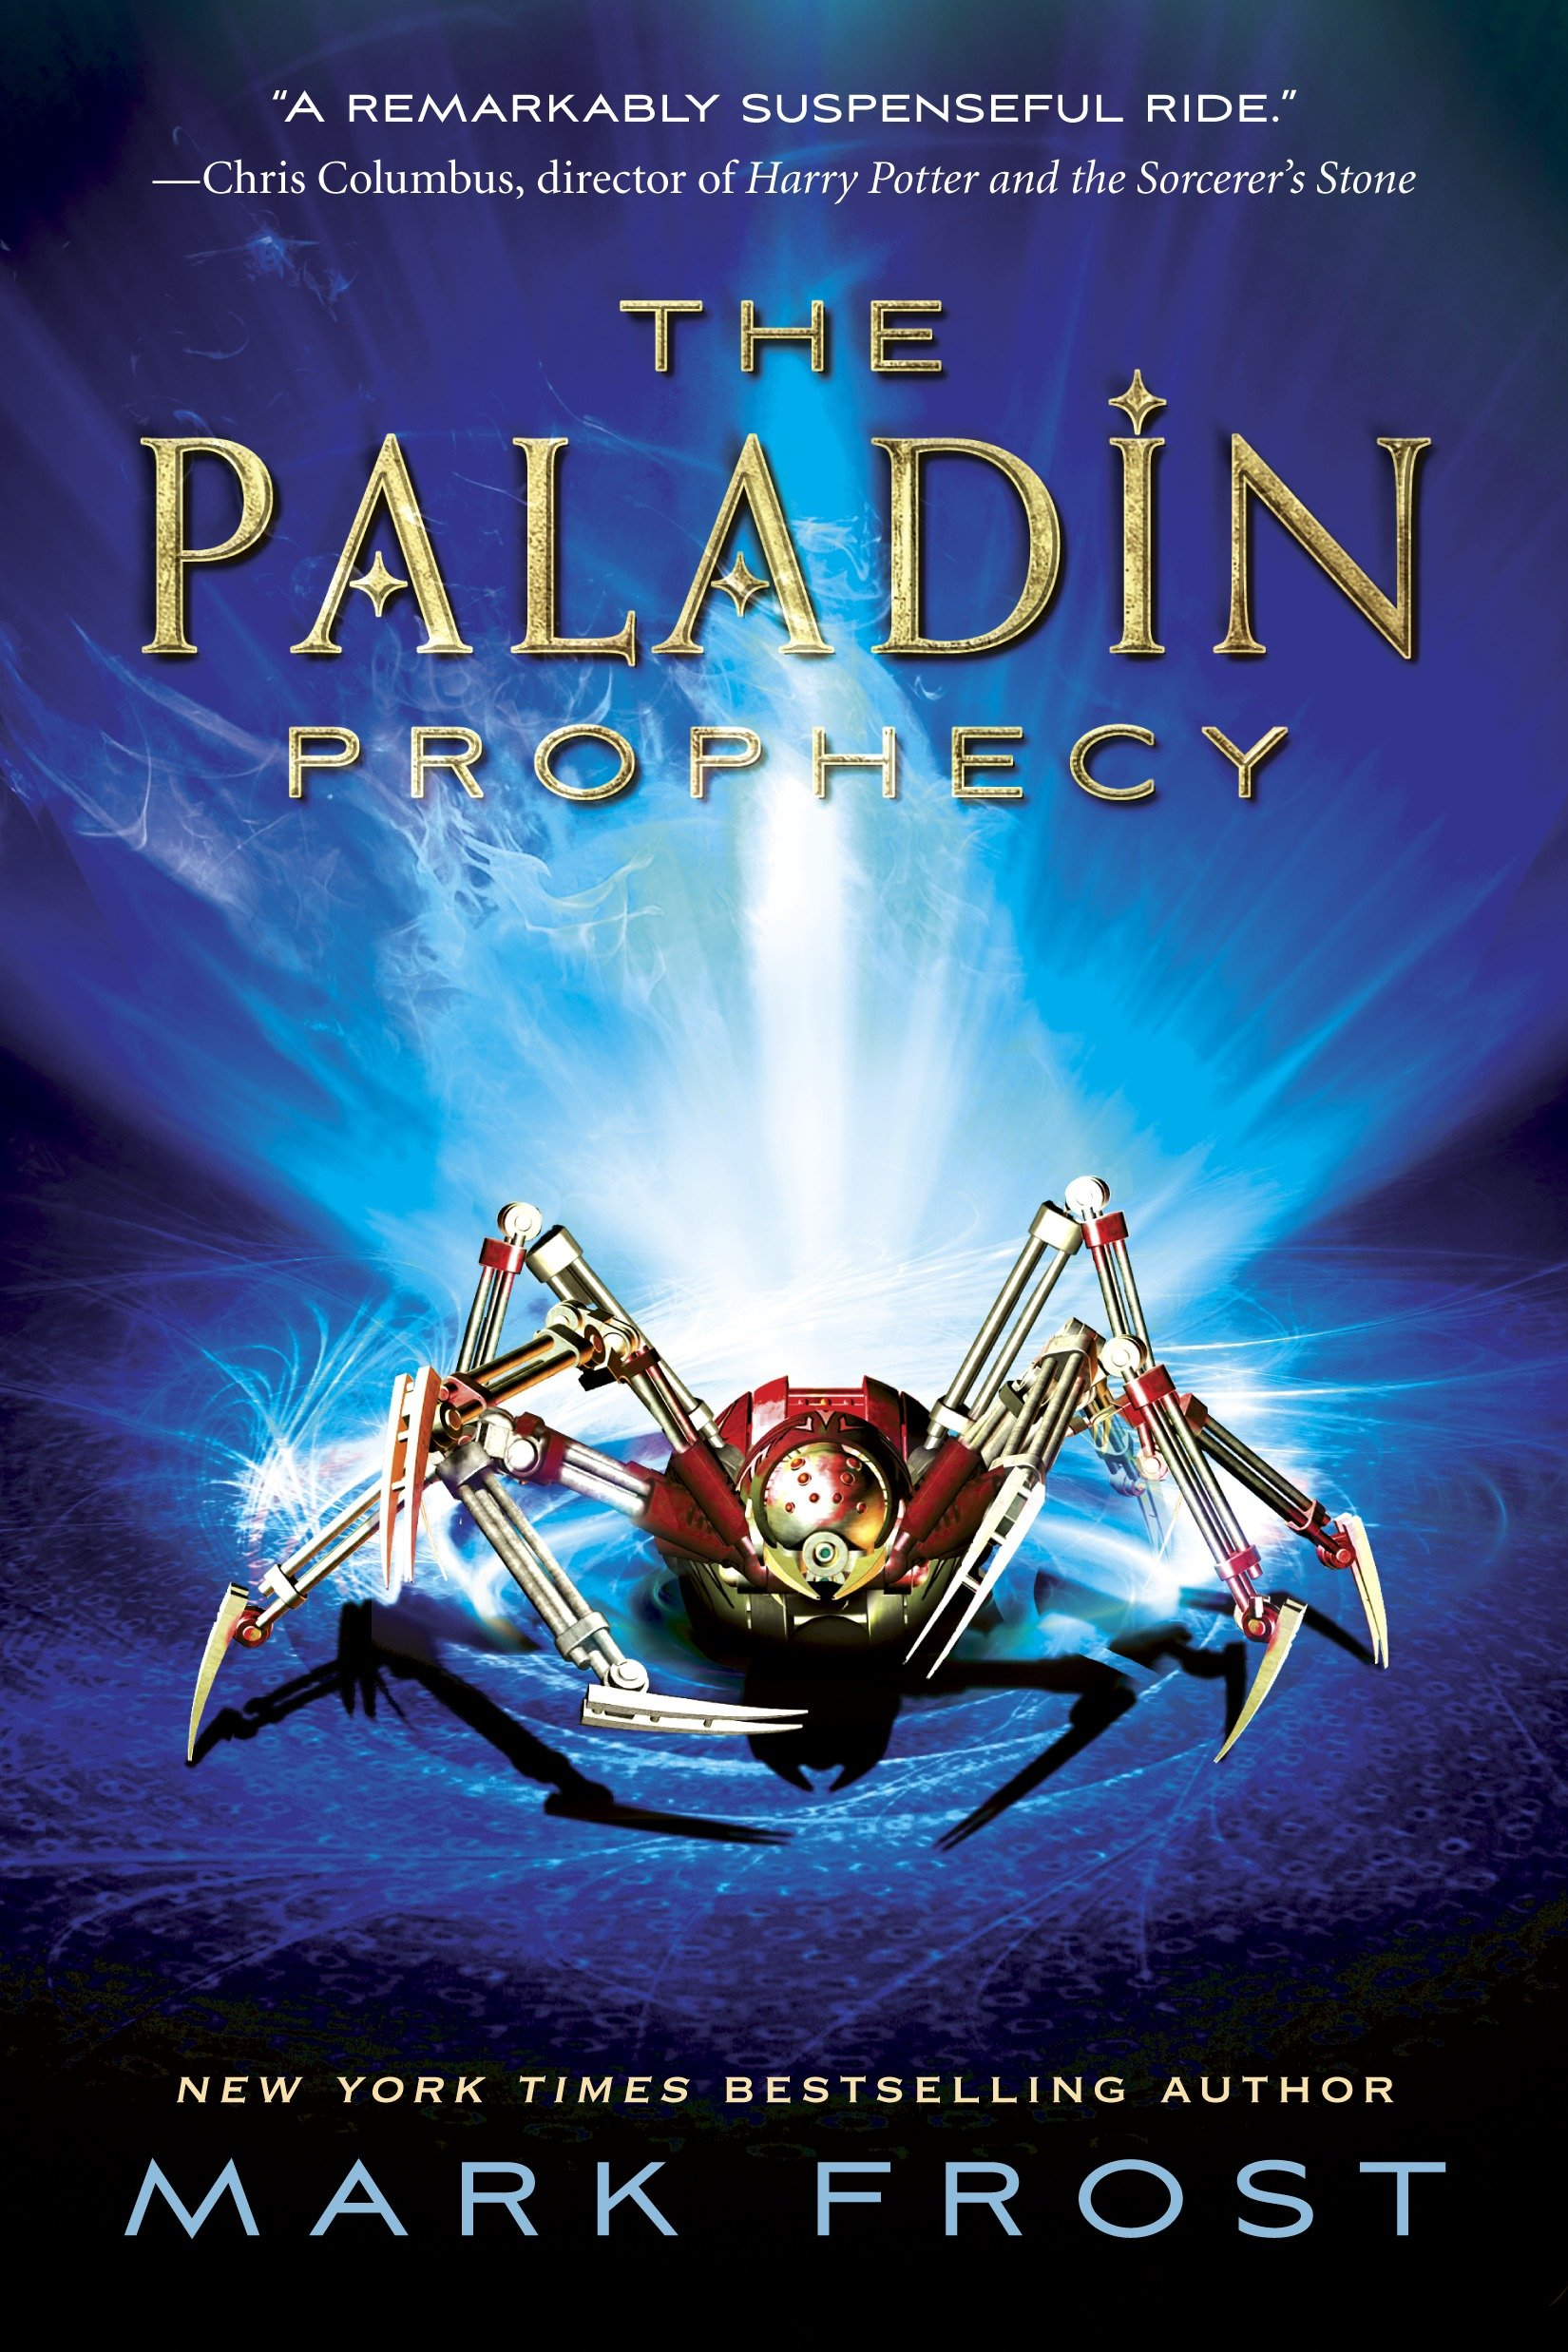 The Paladin prophecy cover image